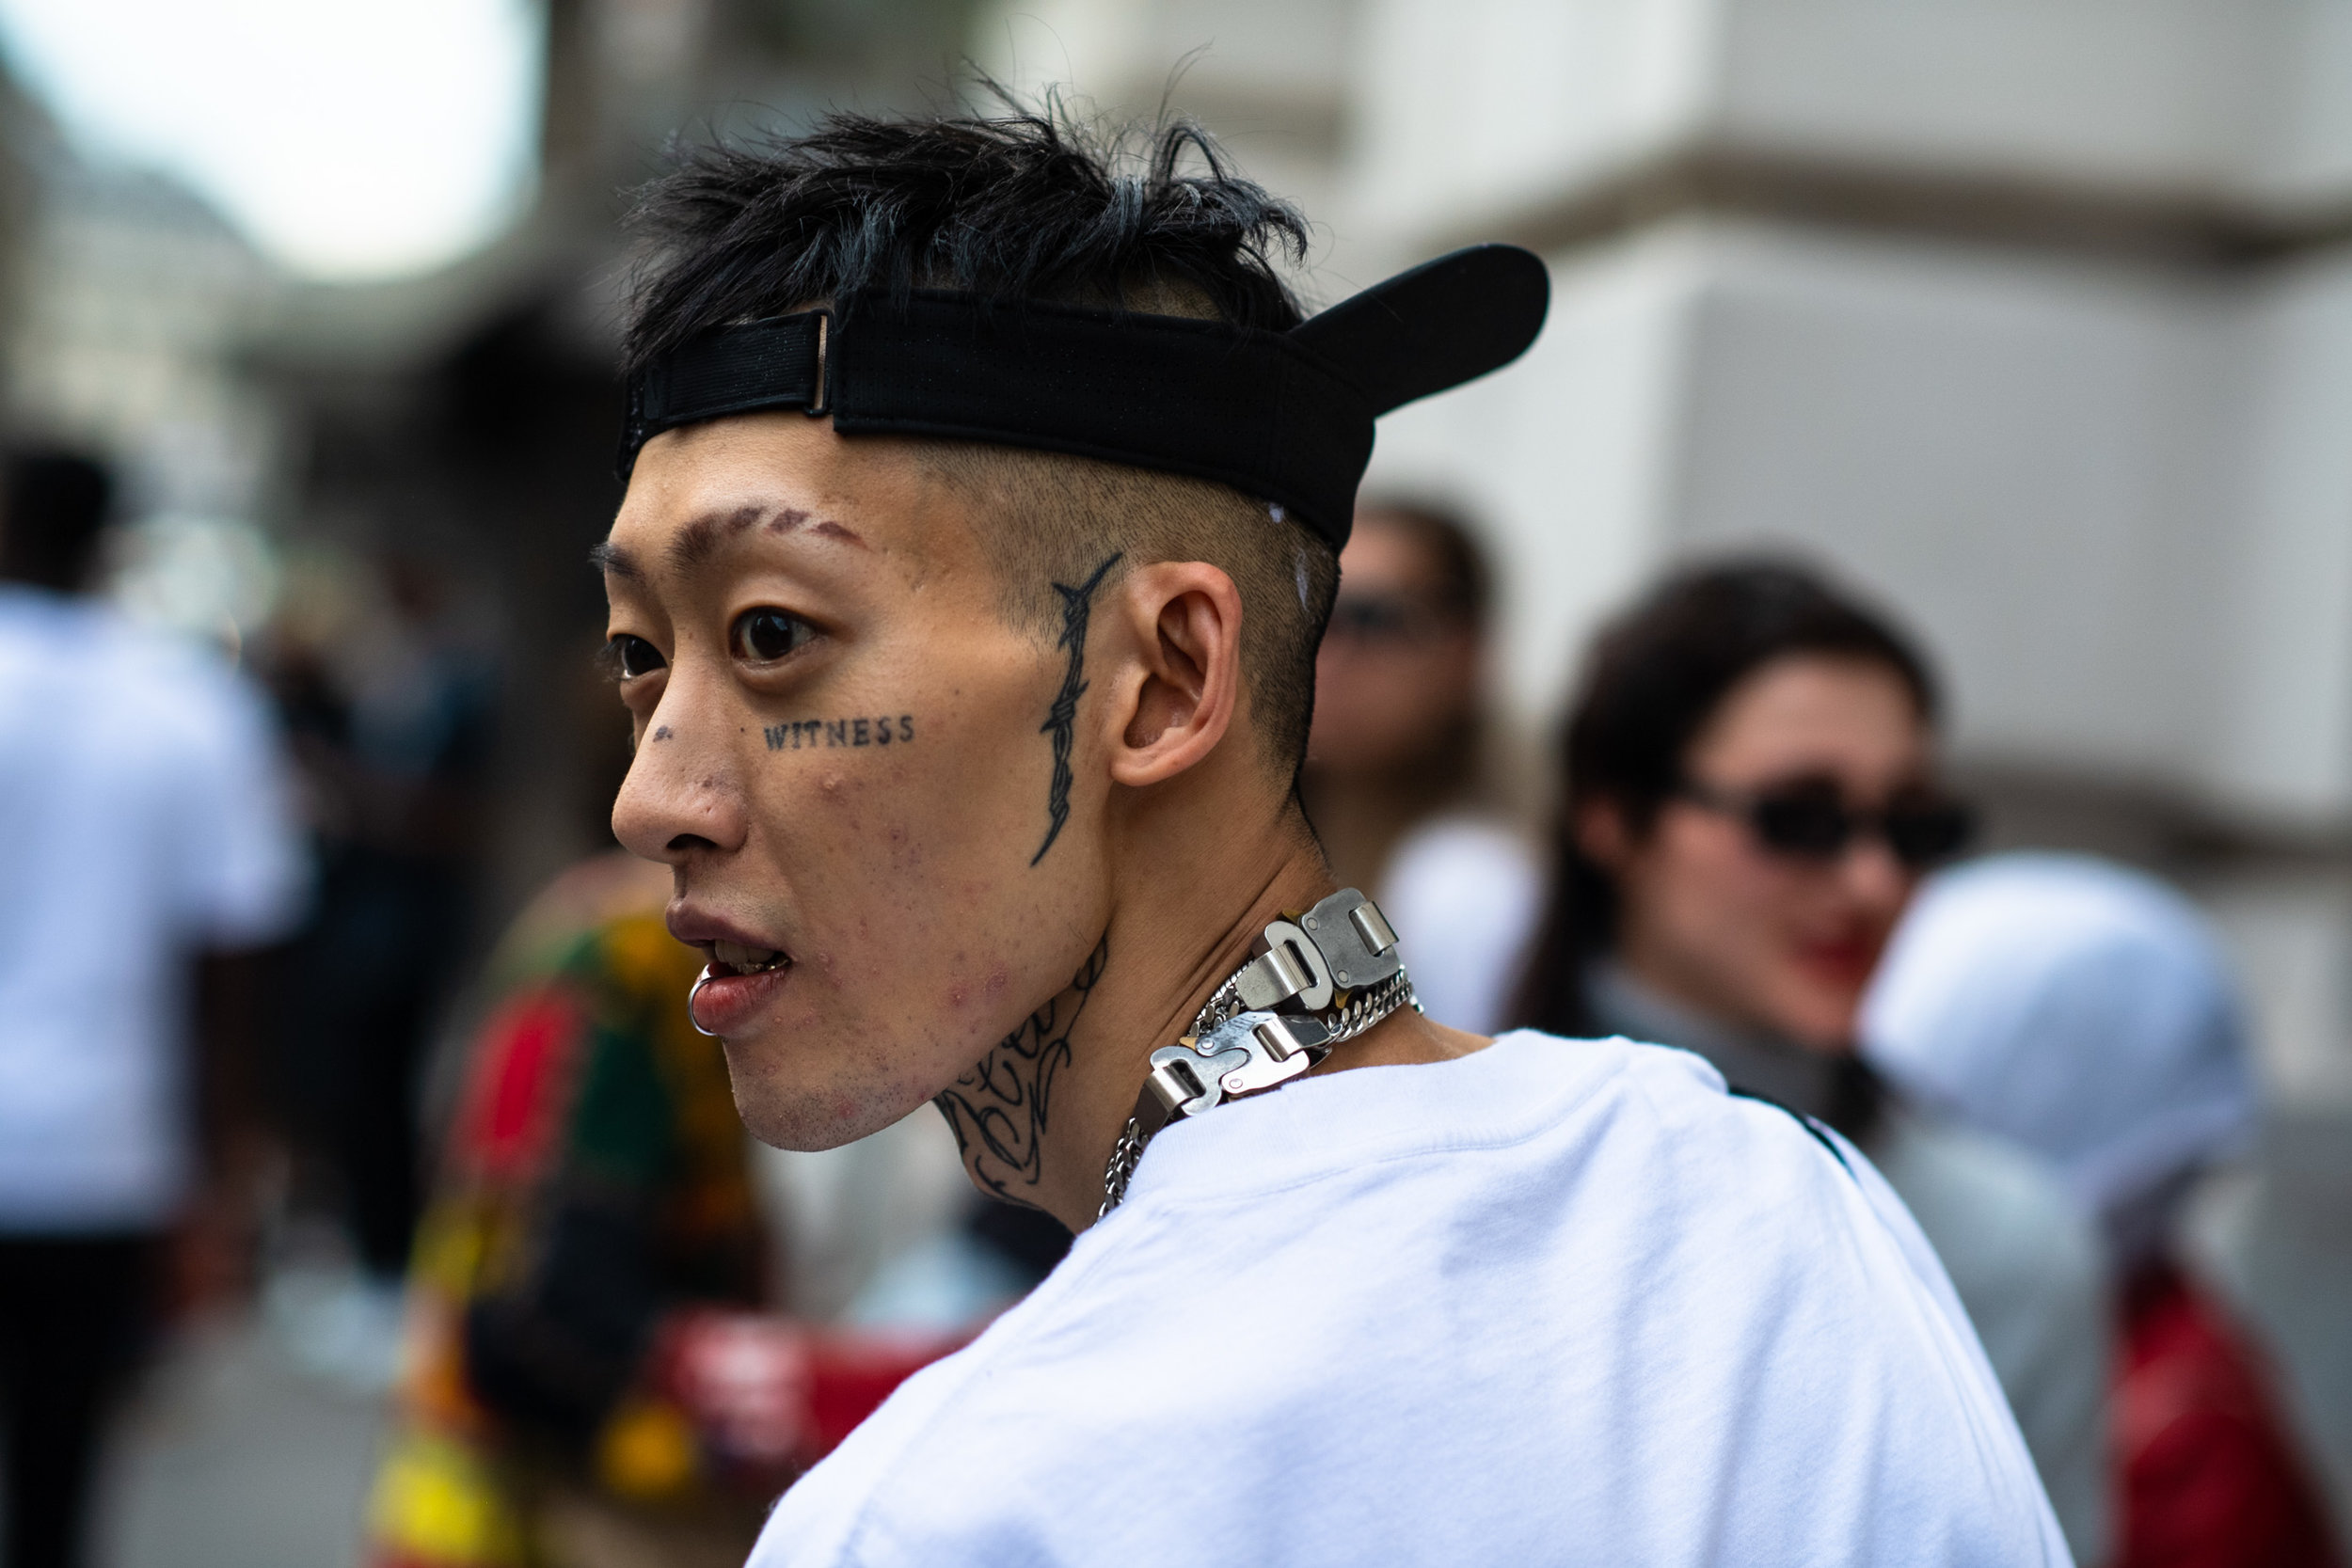 CNI x PFW - By Andrew Barber (OmniStyle) PT5-30.jpg